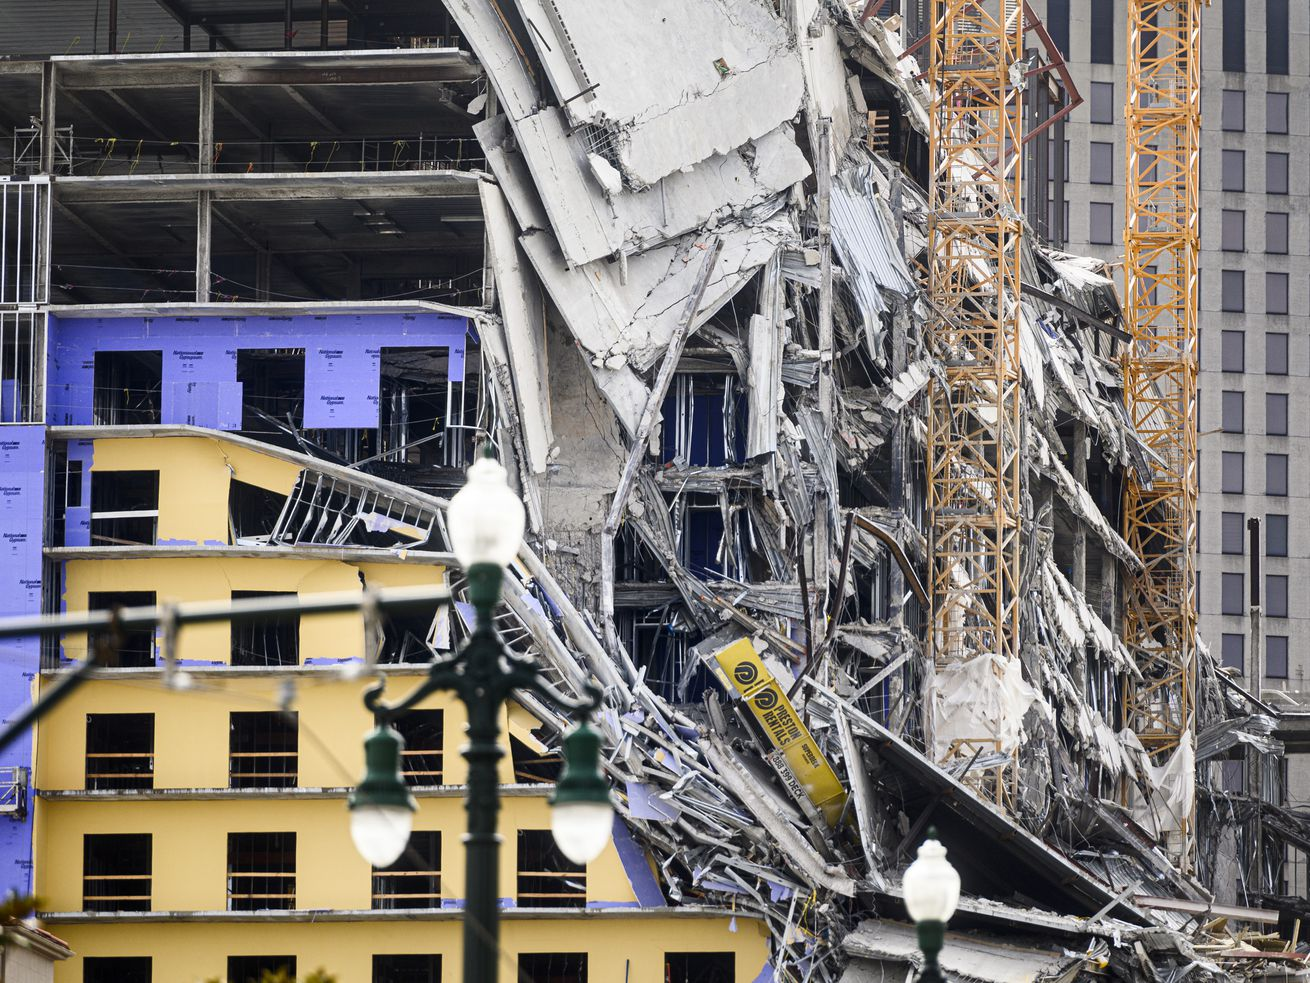 A collapsed building in downtown New Orleans